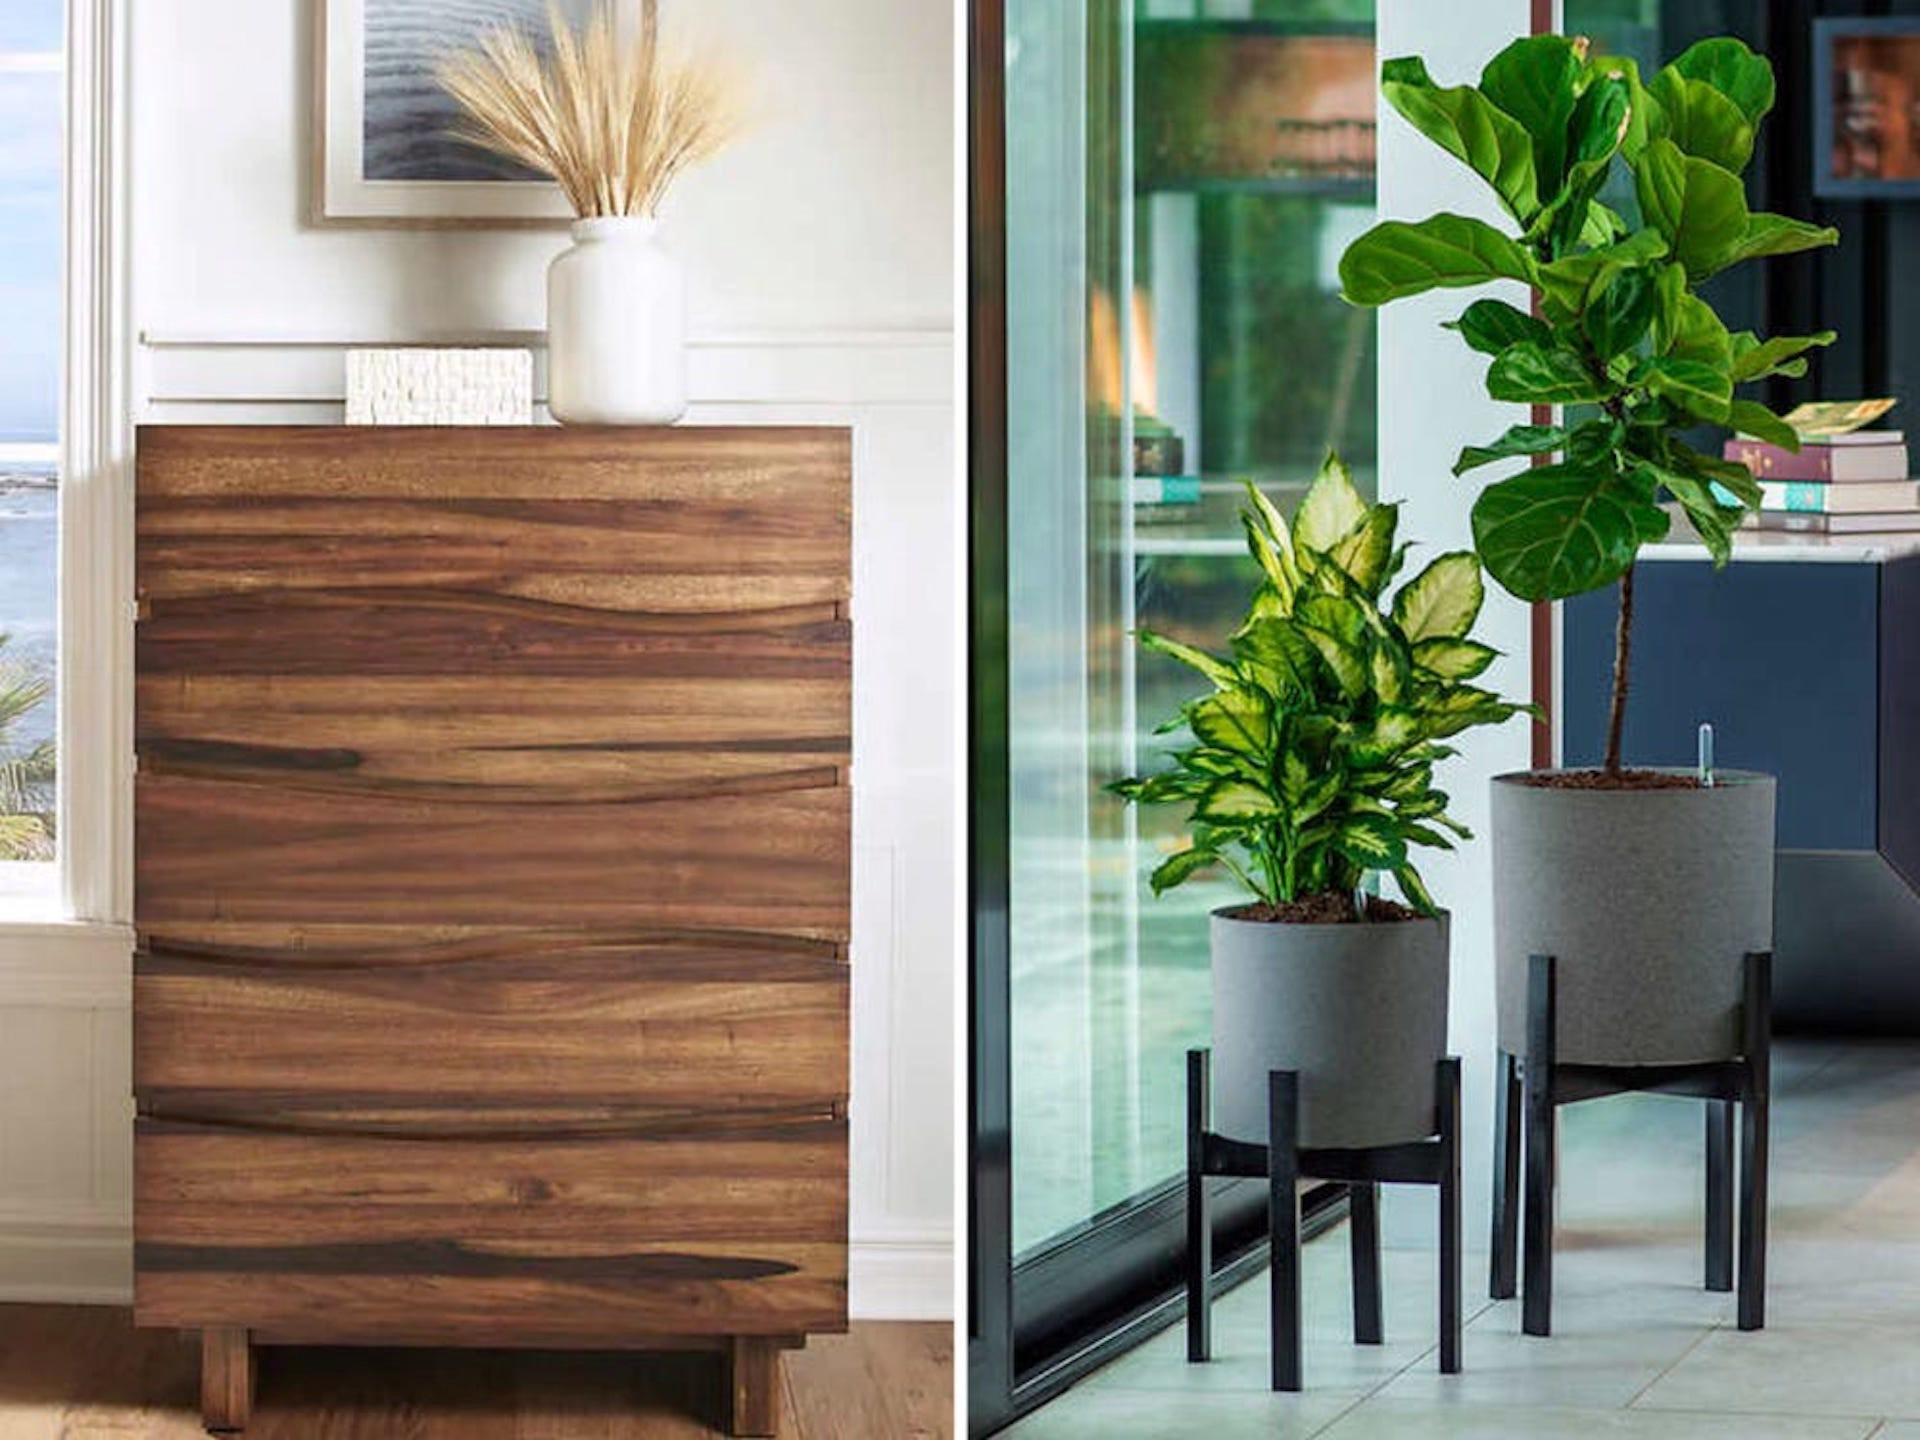 A dresser and two plants.